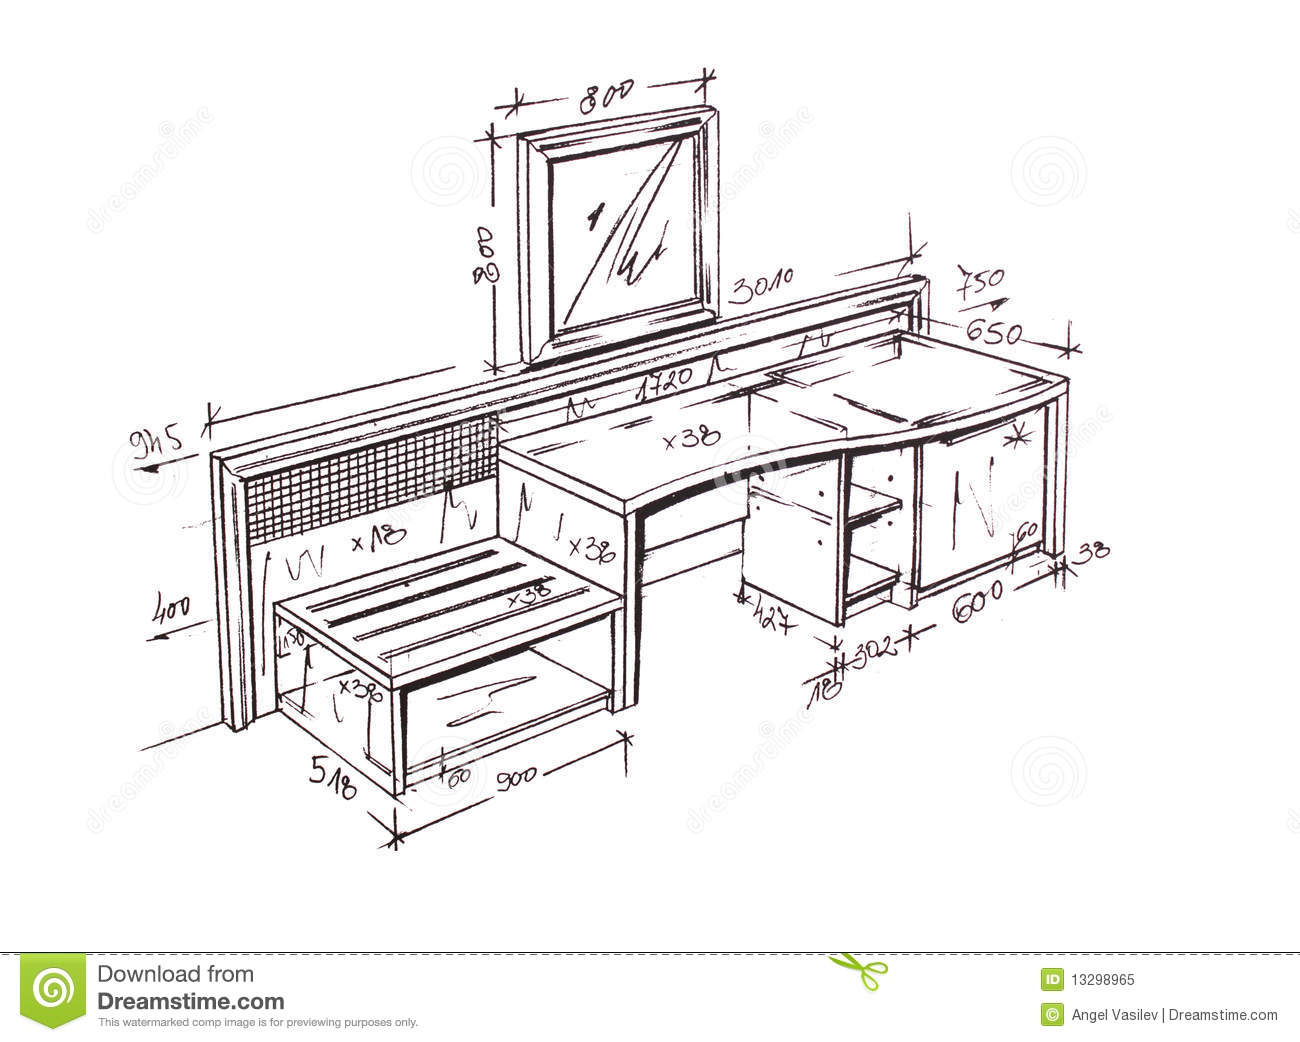 Furniture design drawings best interior designers - Drawing room furniture designs ...